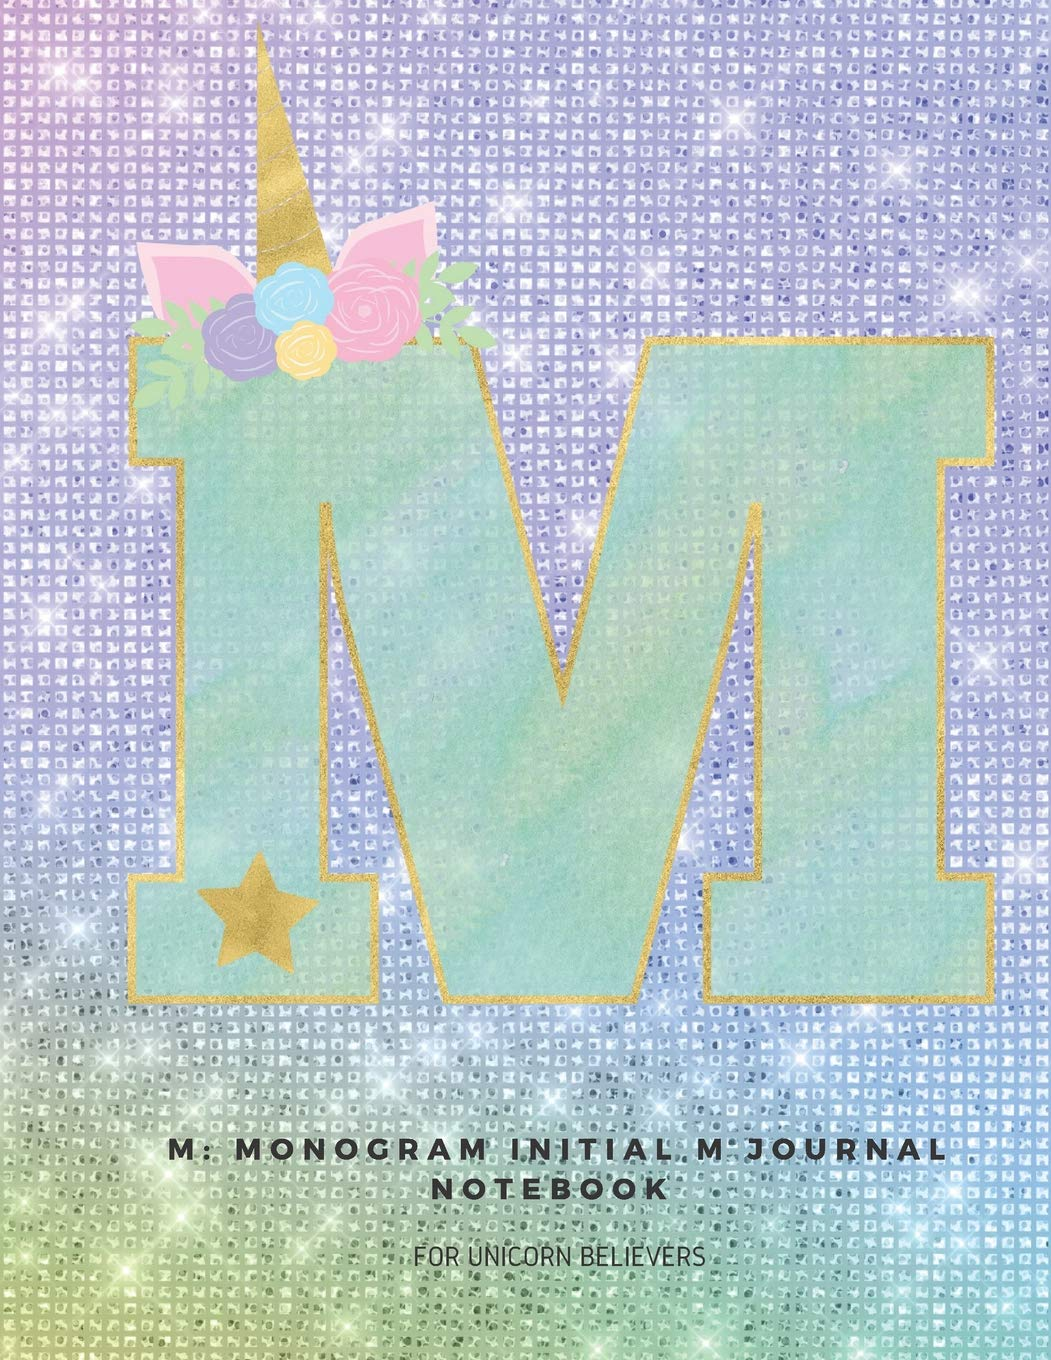 M: Monogram Initial M Journal Notebook for Unicorn Believers